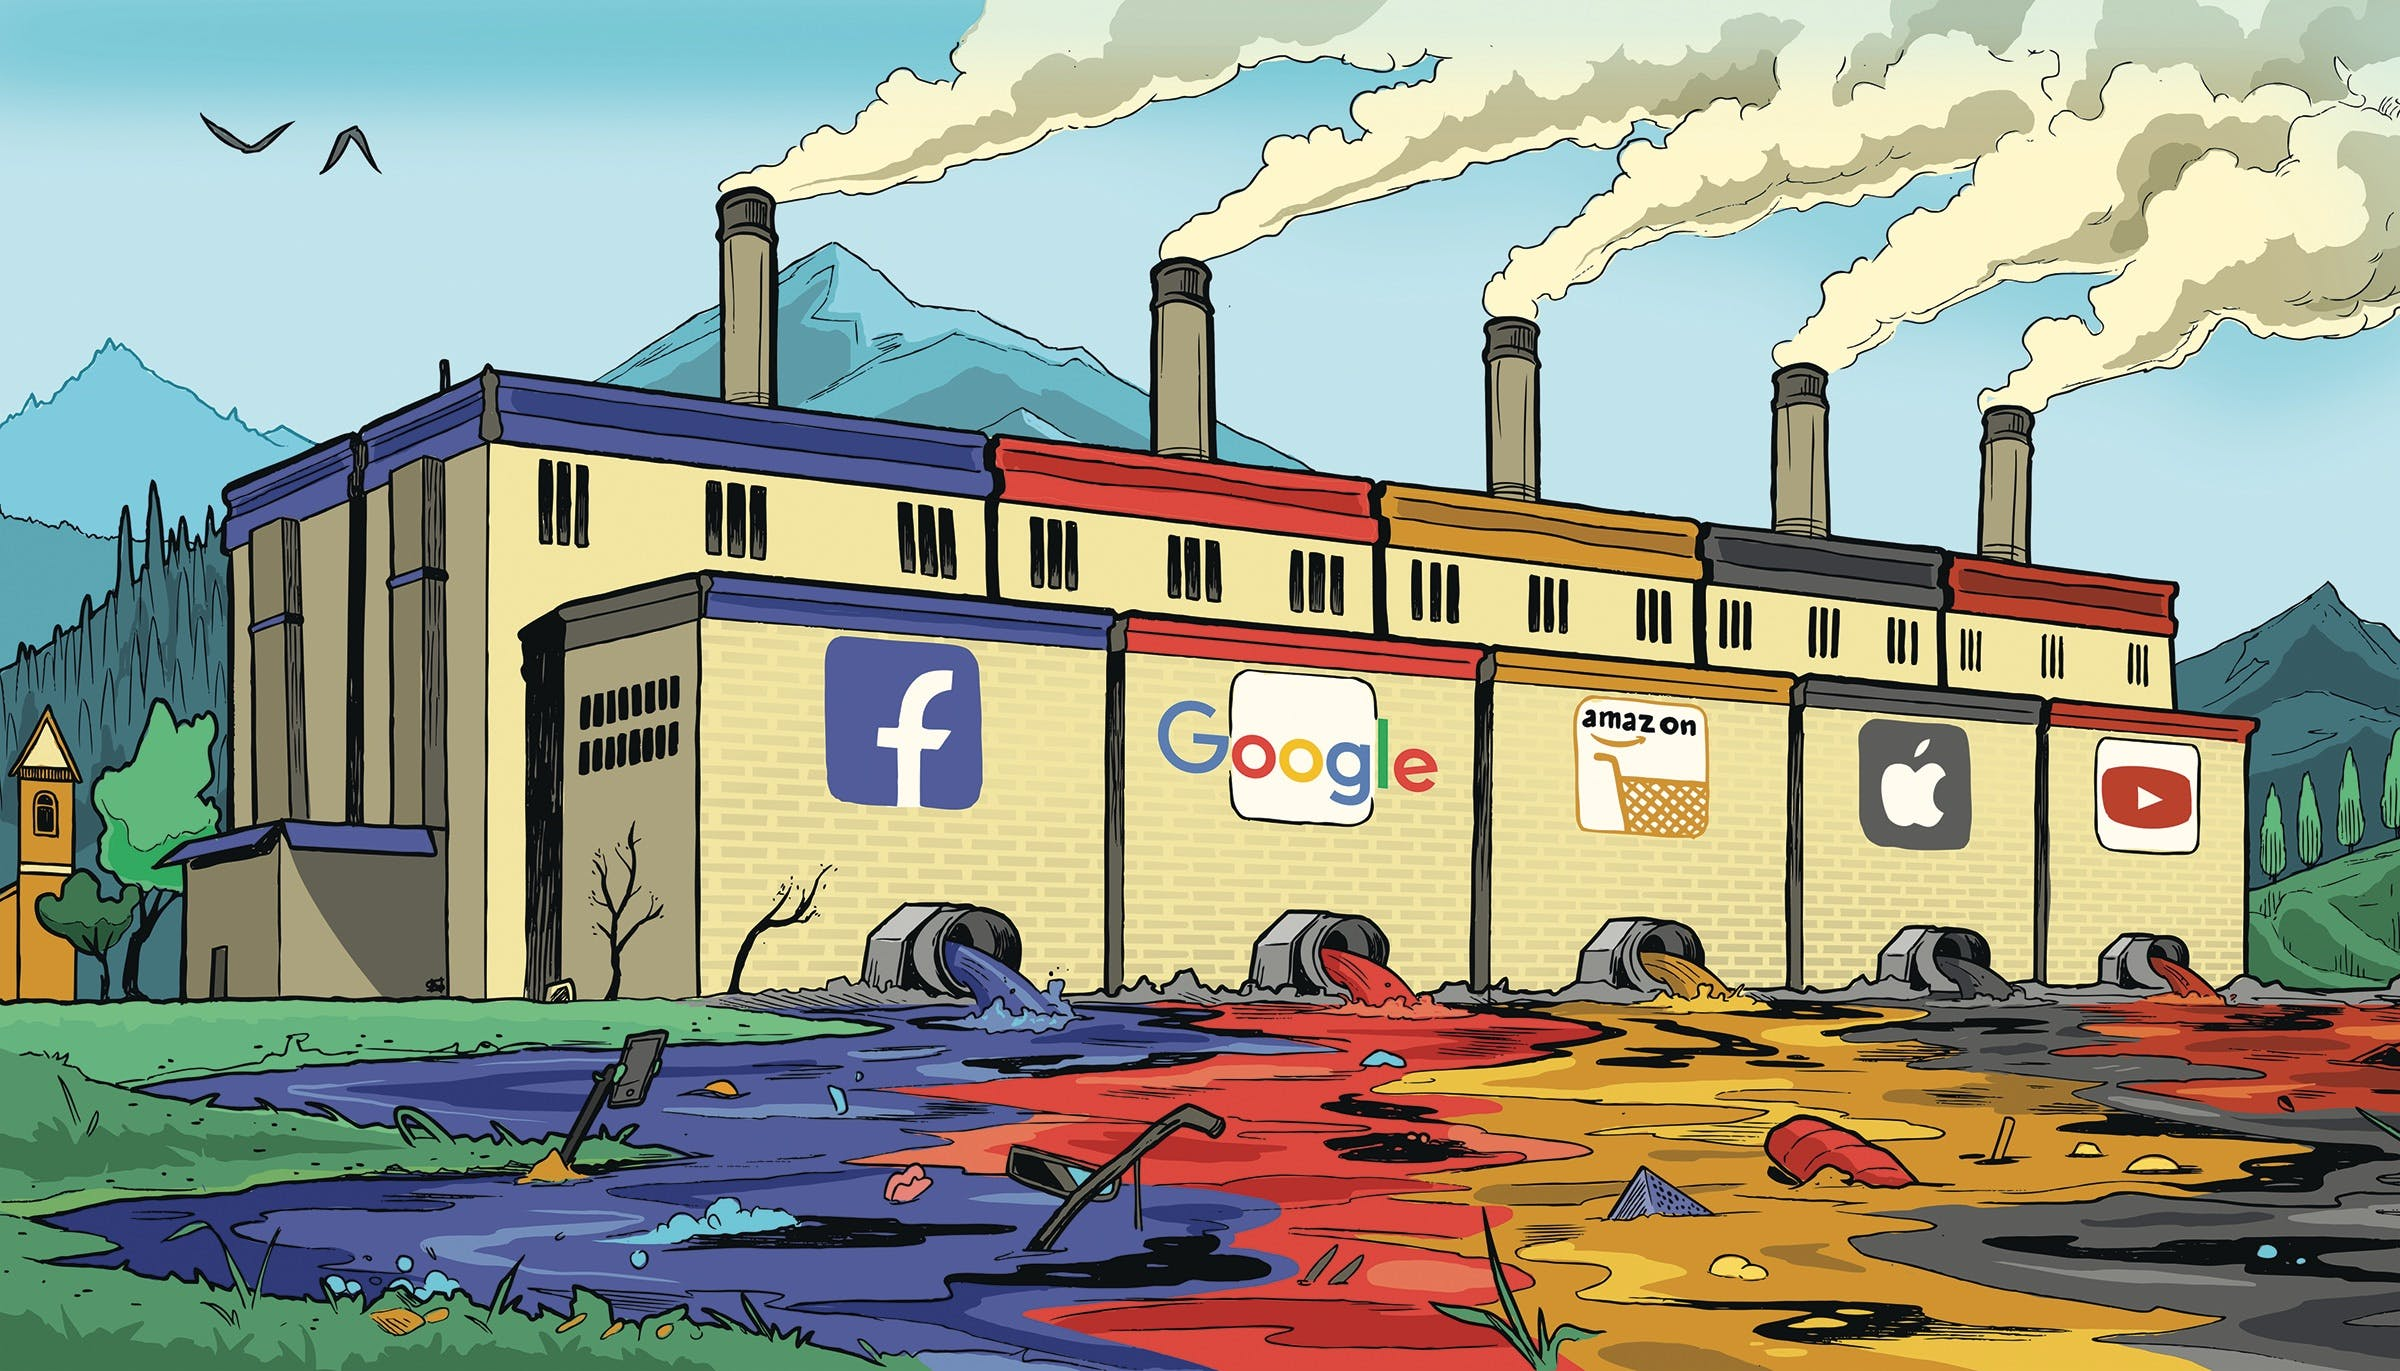 """<p>Read &quot;<a href=""""https://washingtonmonthly.com/magazine/january-february-march-2019/the-world-is-choking-on-digital-pollution/"""" rel=""""noopener noreferrer"""" target=""""_blank"""">The World Is Choking on Digital Pollution</a>&quot; in Washington Monthly.</p>"""